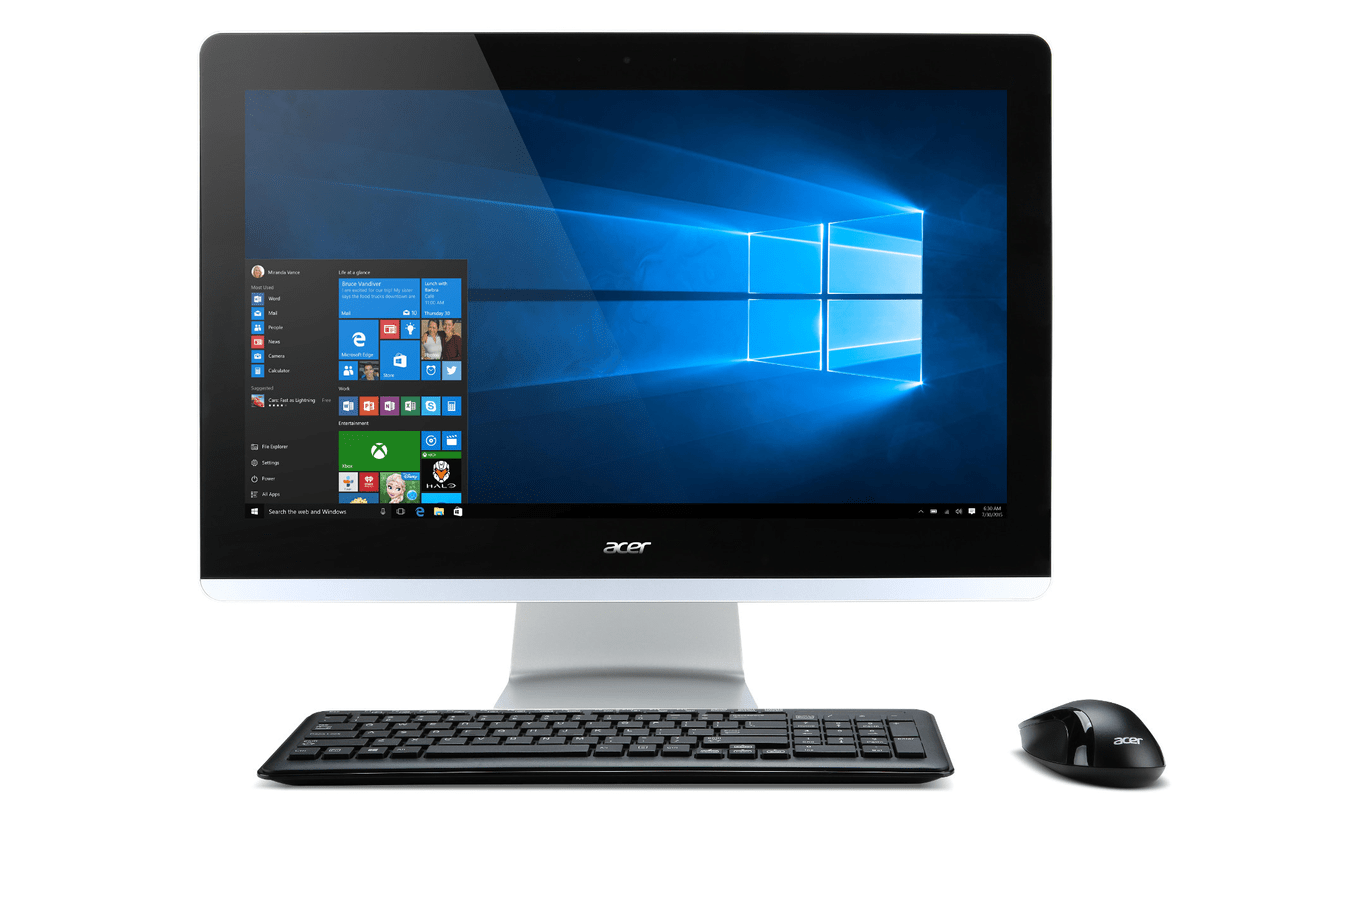 Darty Ordinateur Bureau Pc De Bureau Acer Aspire Z3 705 004 4222180 Darty